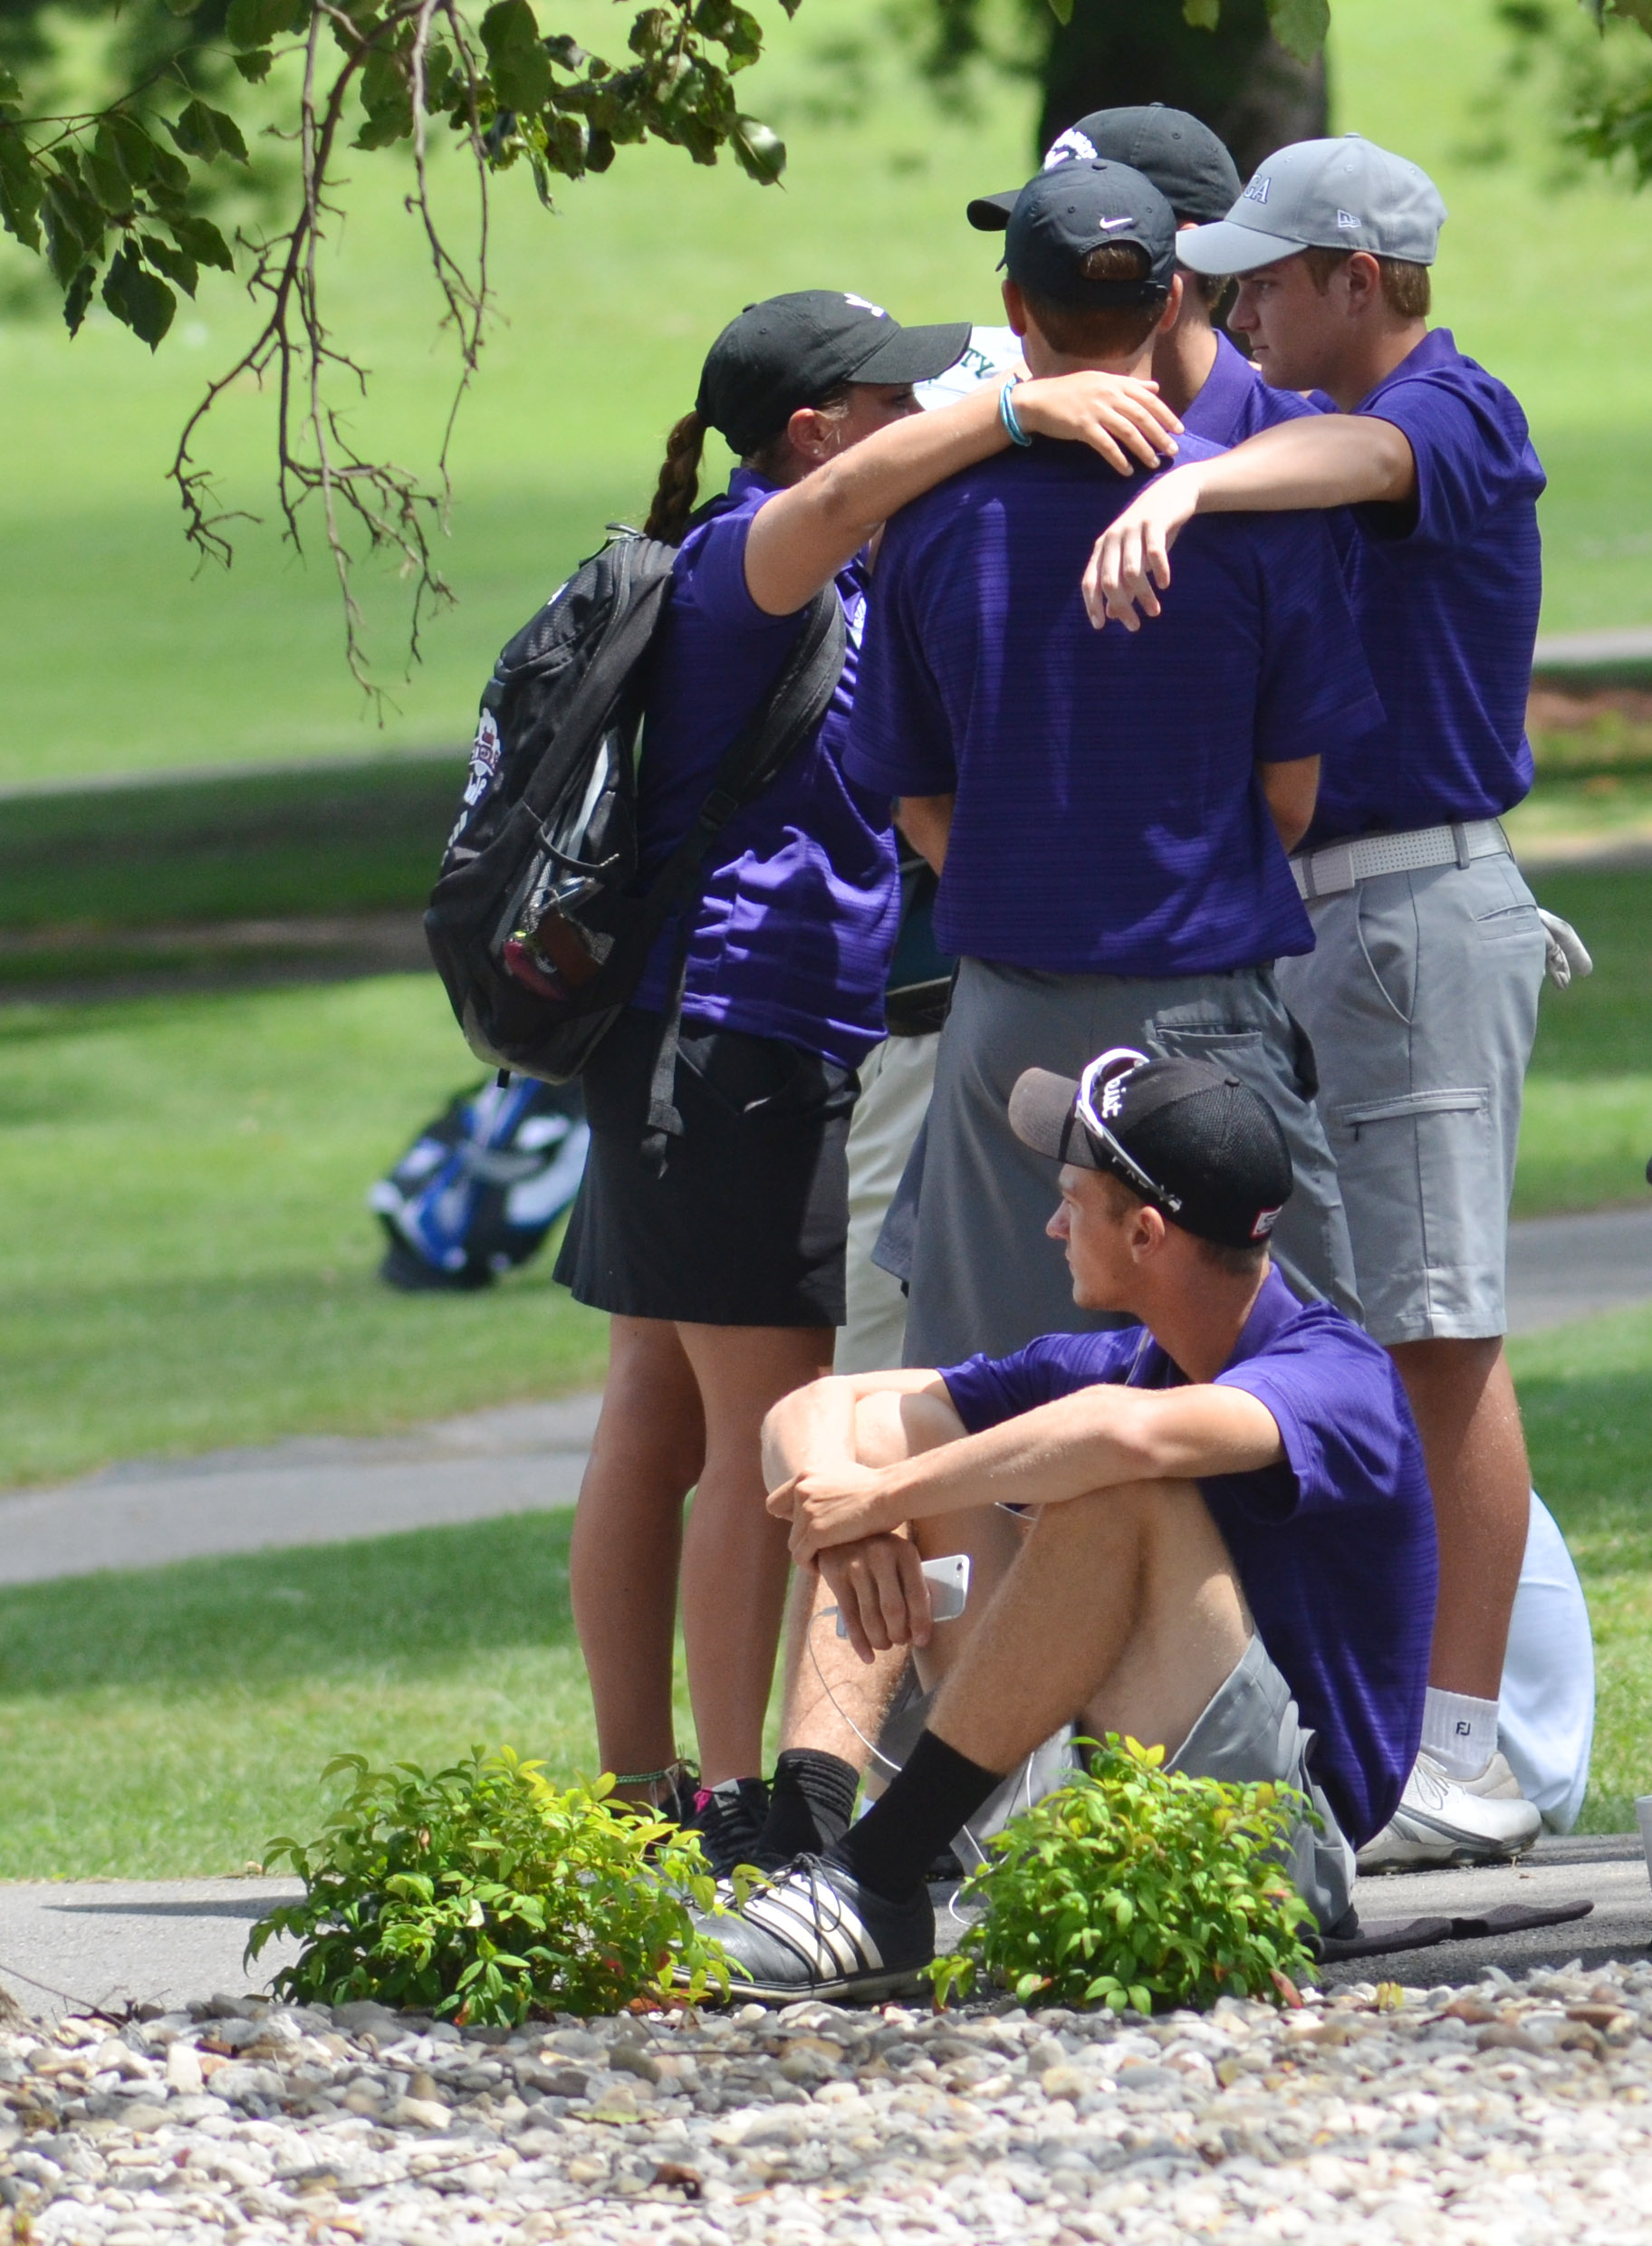 CHS boys' golf coach Cassidy Decker talks with her players before they play.